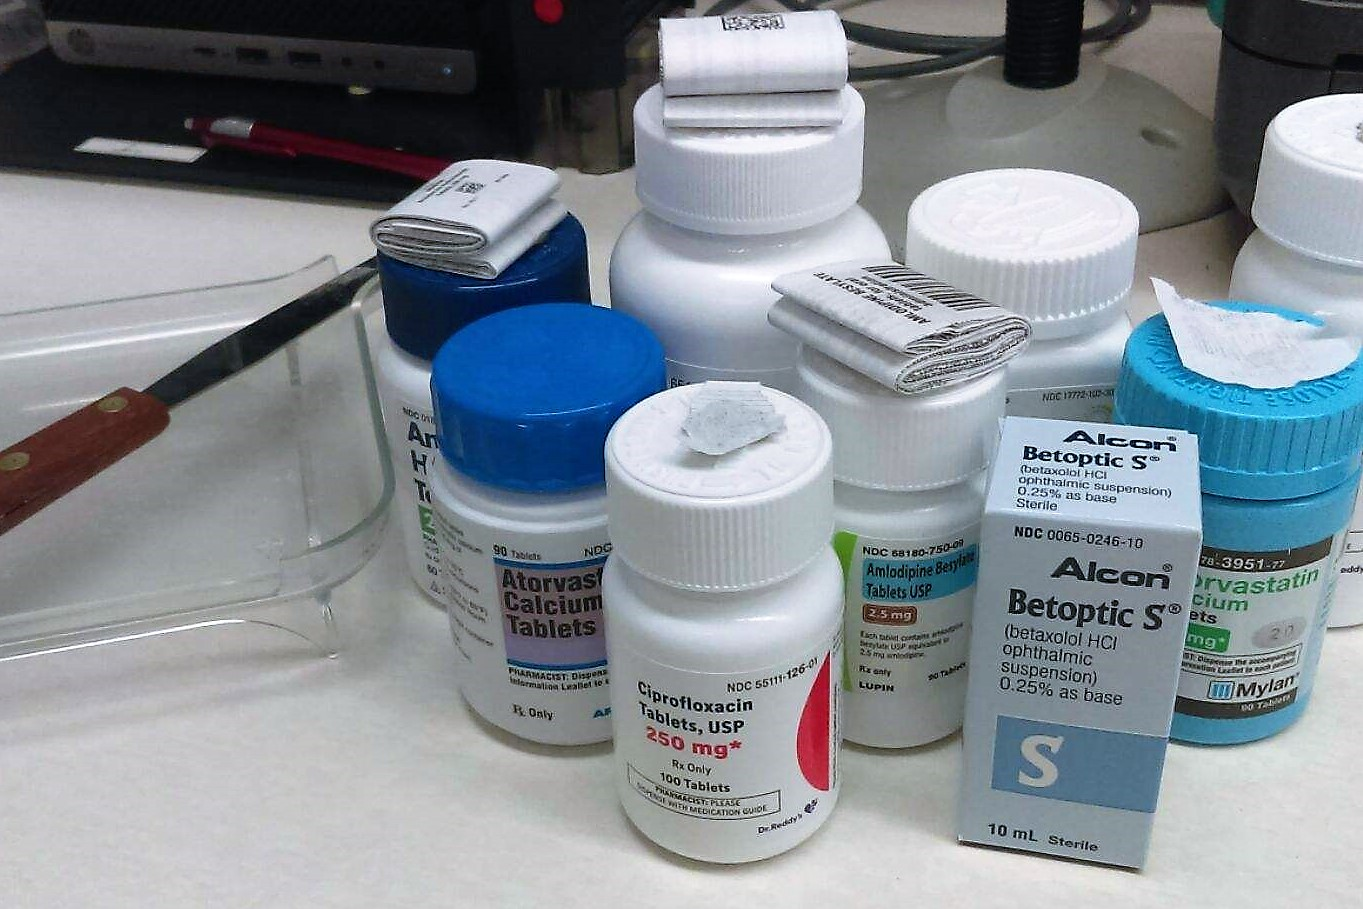 multiple medications and counting tray.jpg